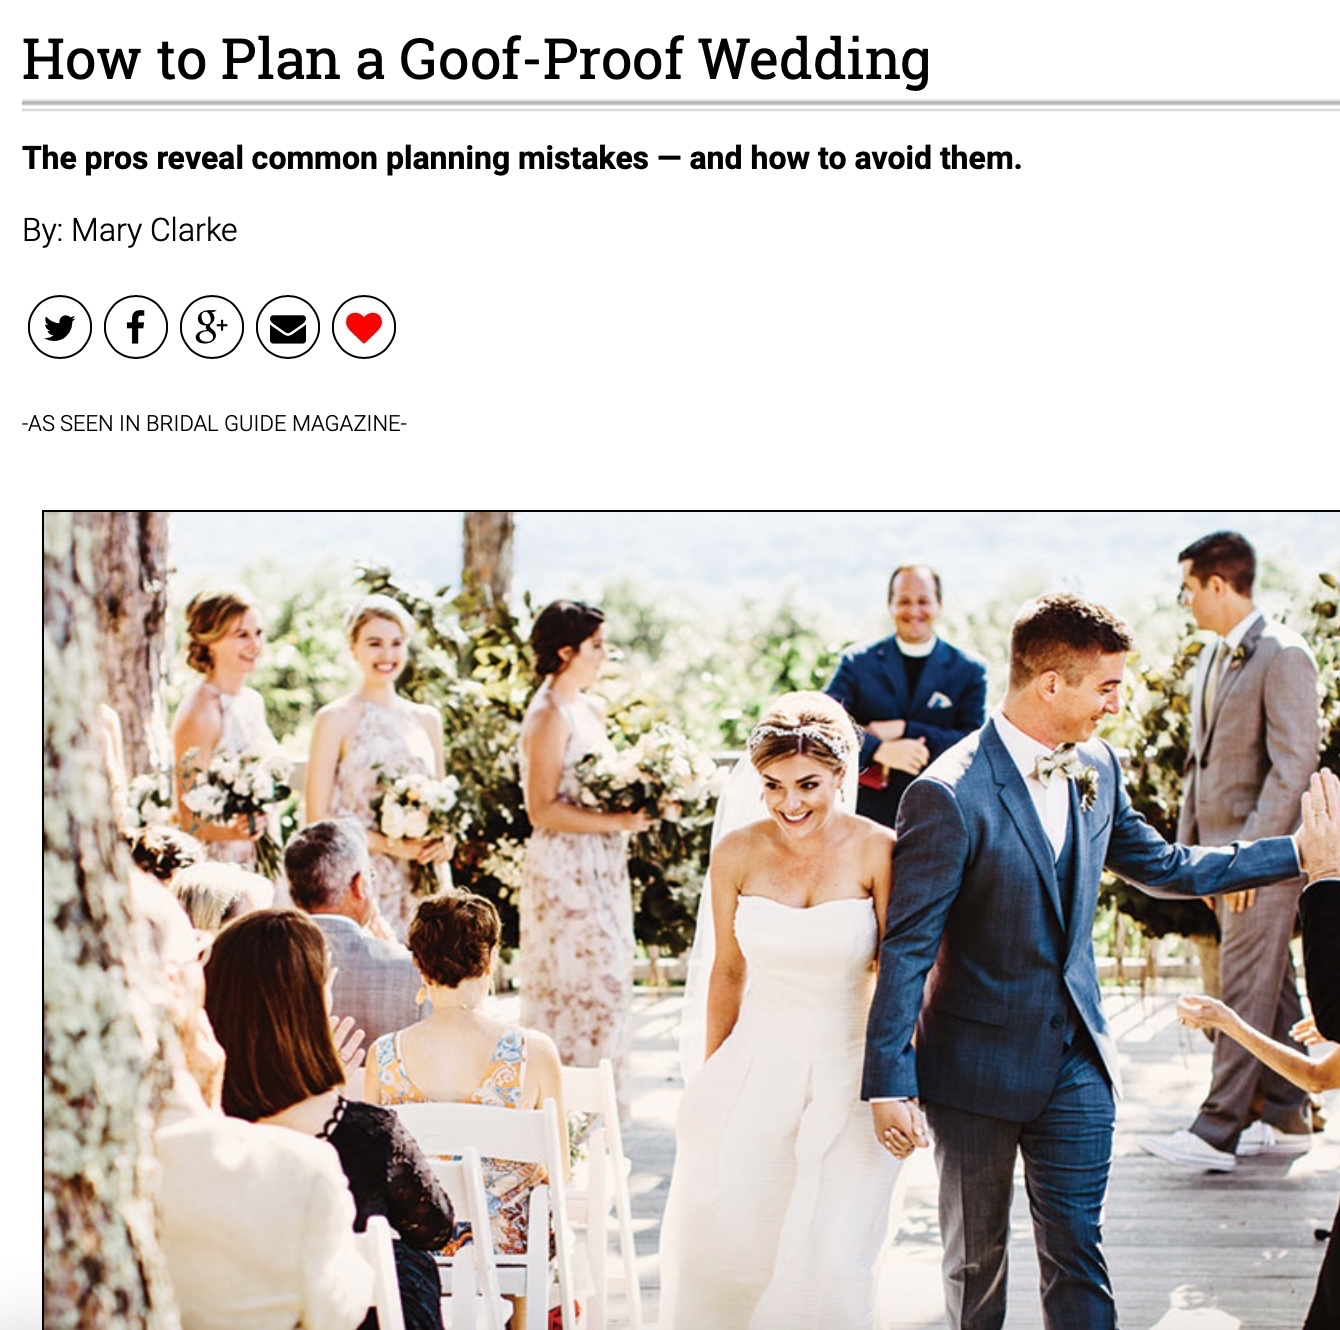 Andrea-Freeman-Wedding-Planner-Destination-Tips-Engaged-Bridal-Guide-Wedding-Planning.png